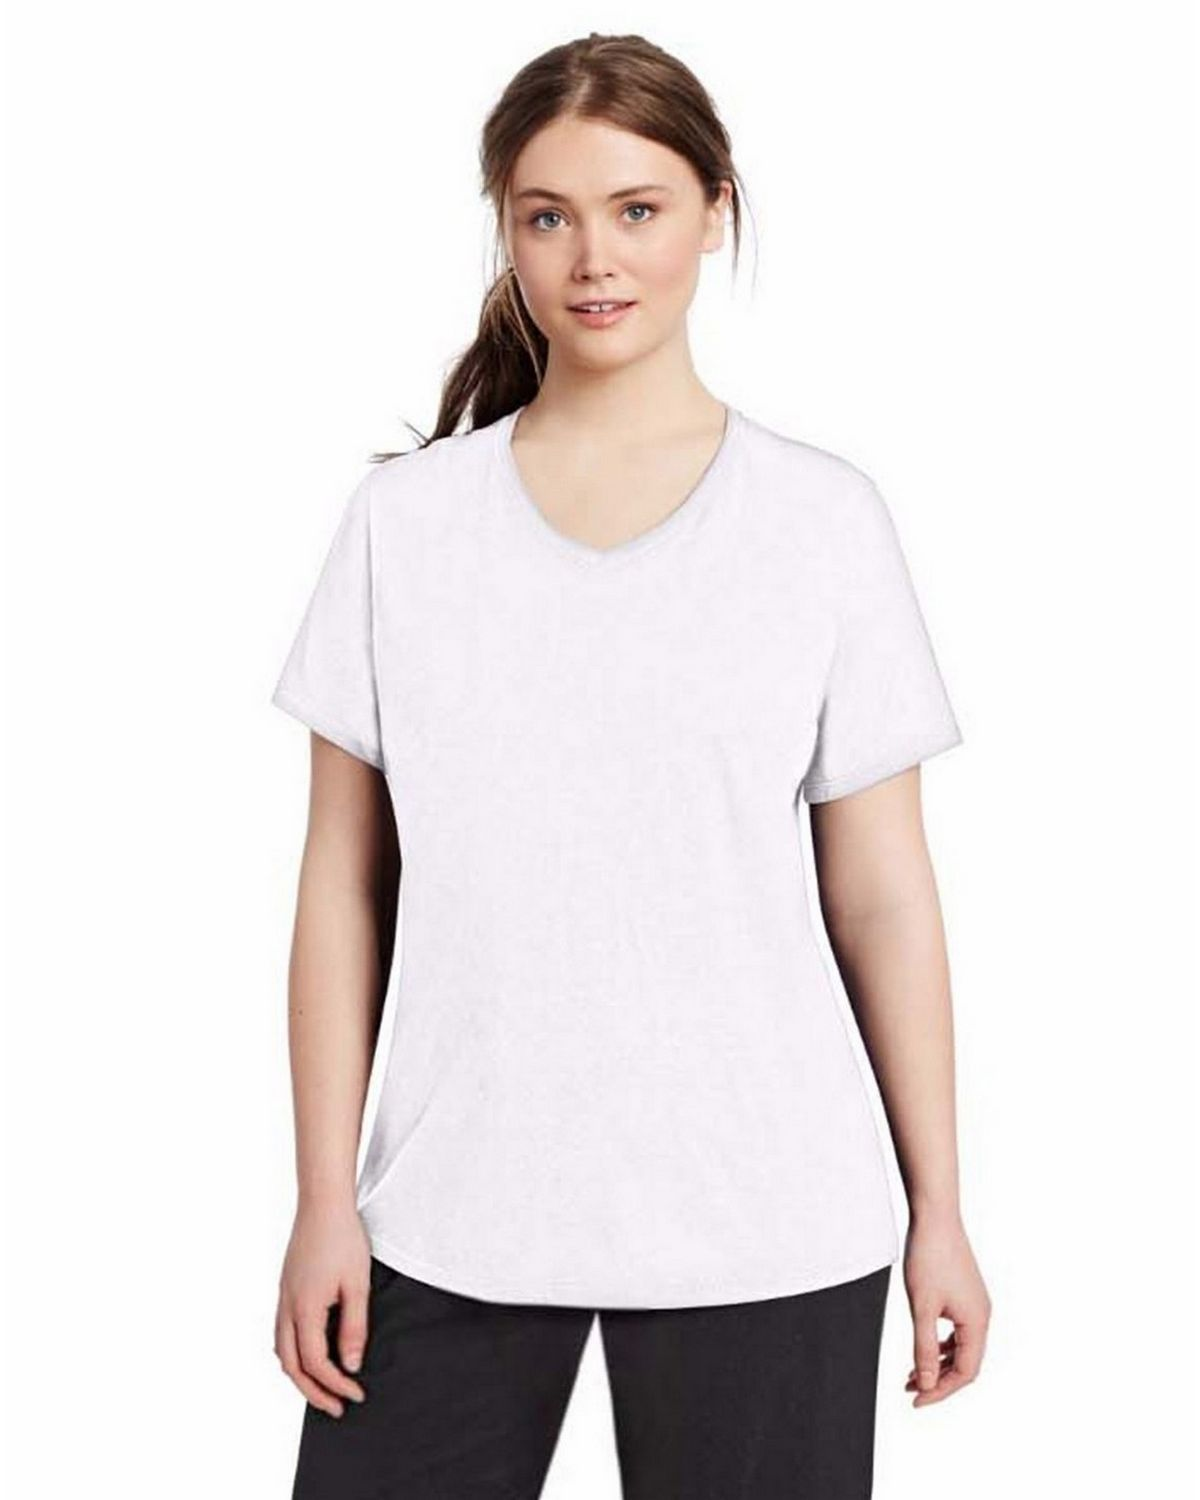 Champion QW1244 Womens Plus Jersey V-Neck - White - 2X QW1244